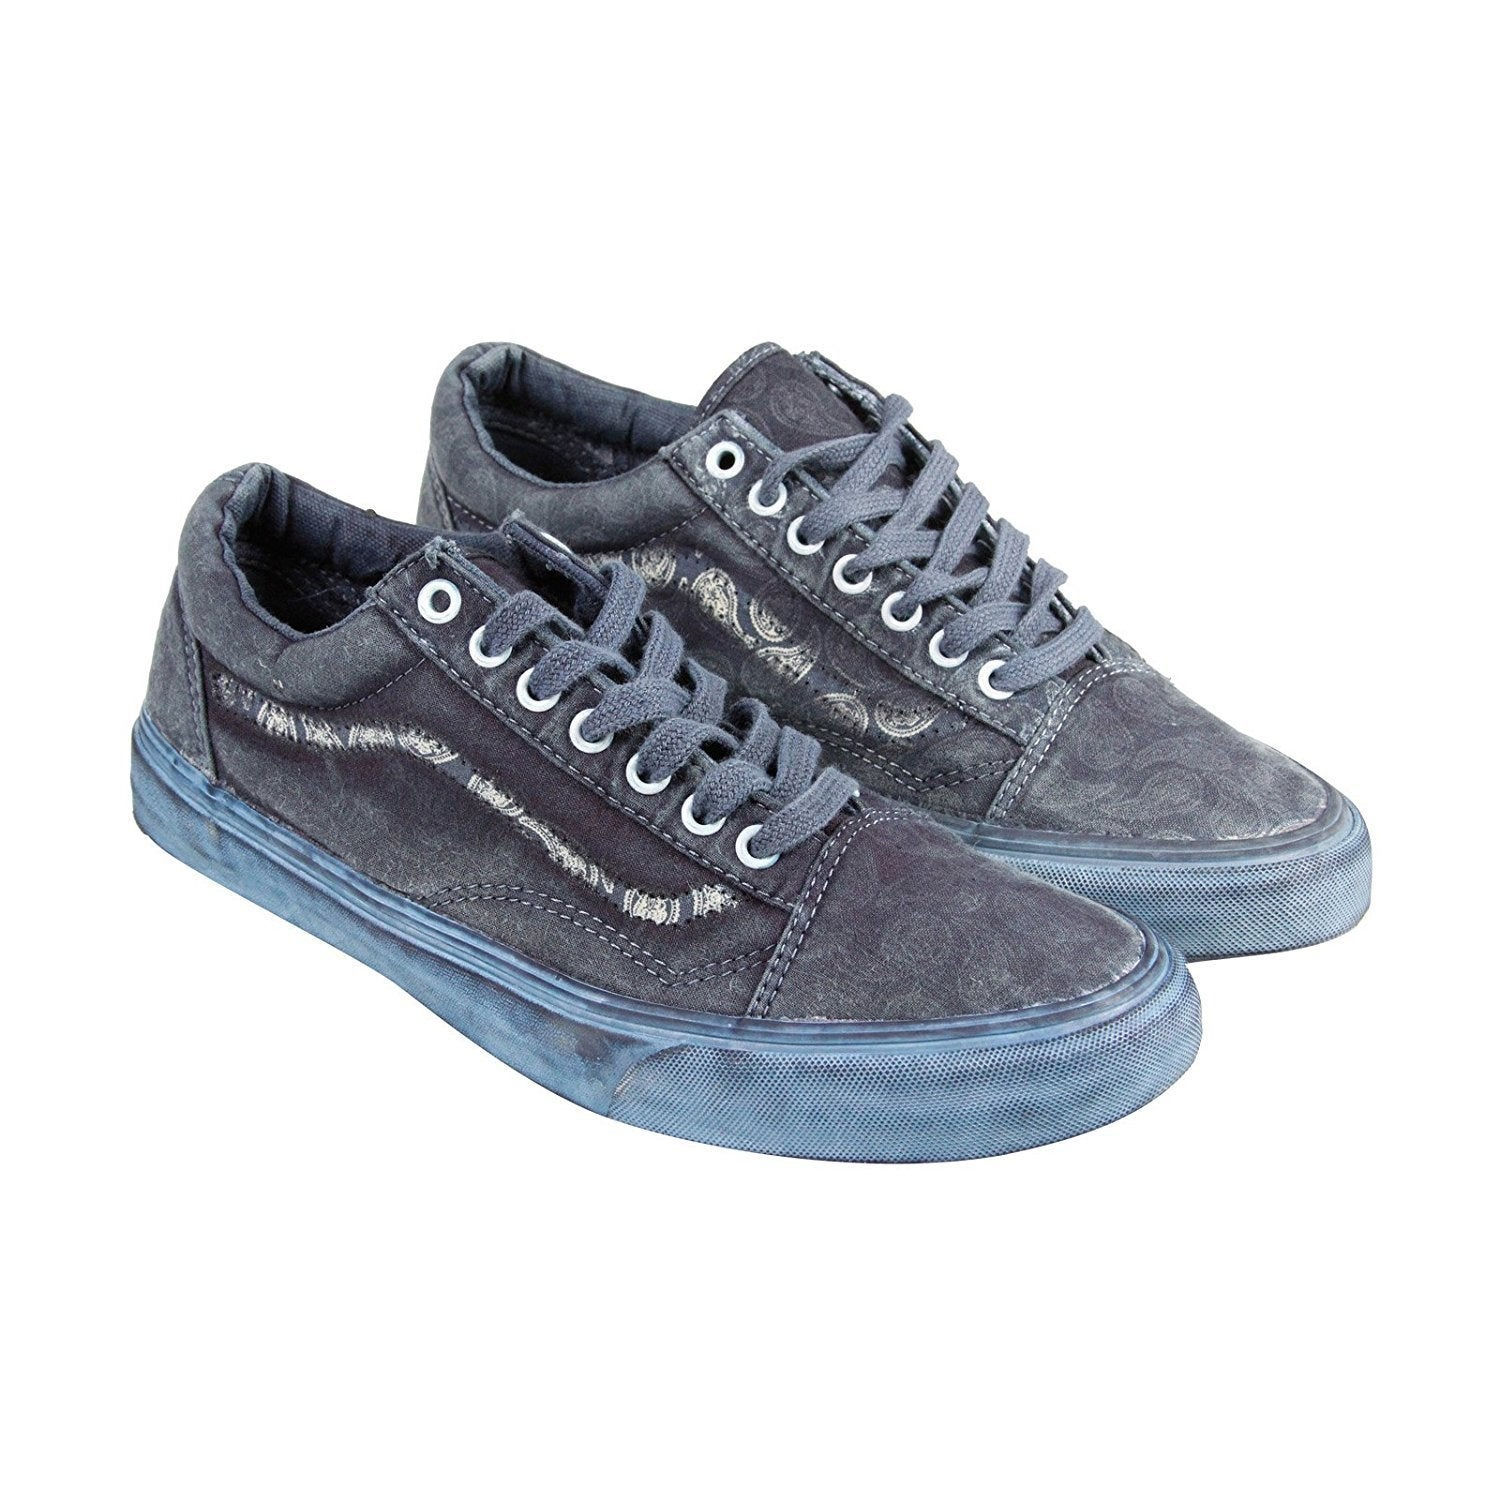 631e90f5d02a Shop Vans Womens Old Skool Cup (Luxe Tweed) Fabric Low Top Lace Up Fashion  Sneakers - Free Shipping Today - Overstock - 20032802